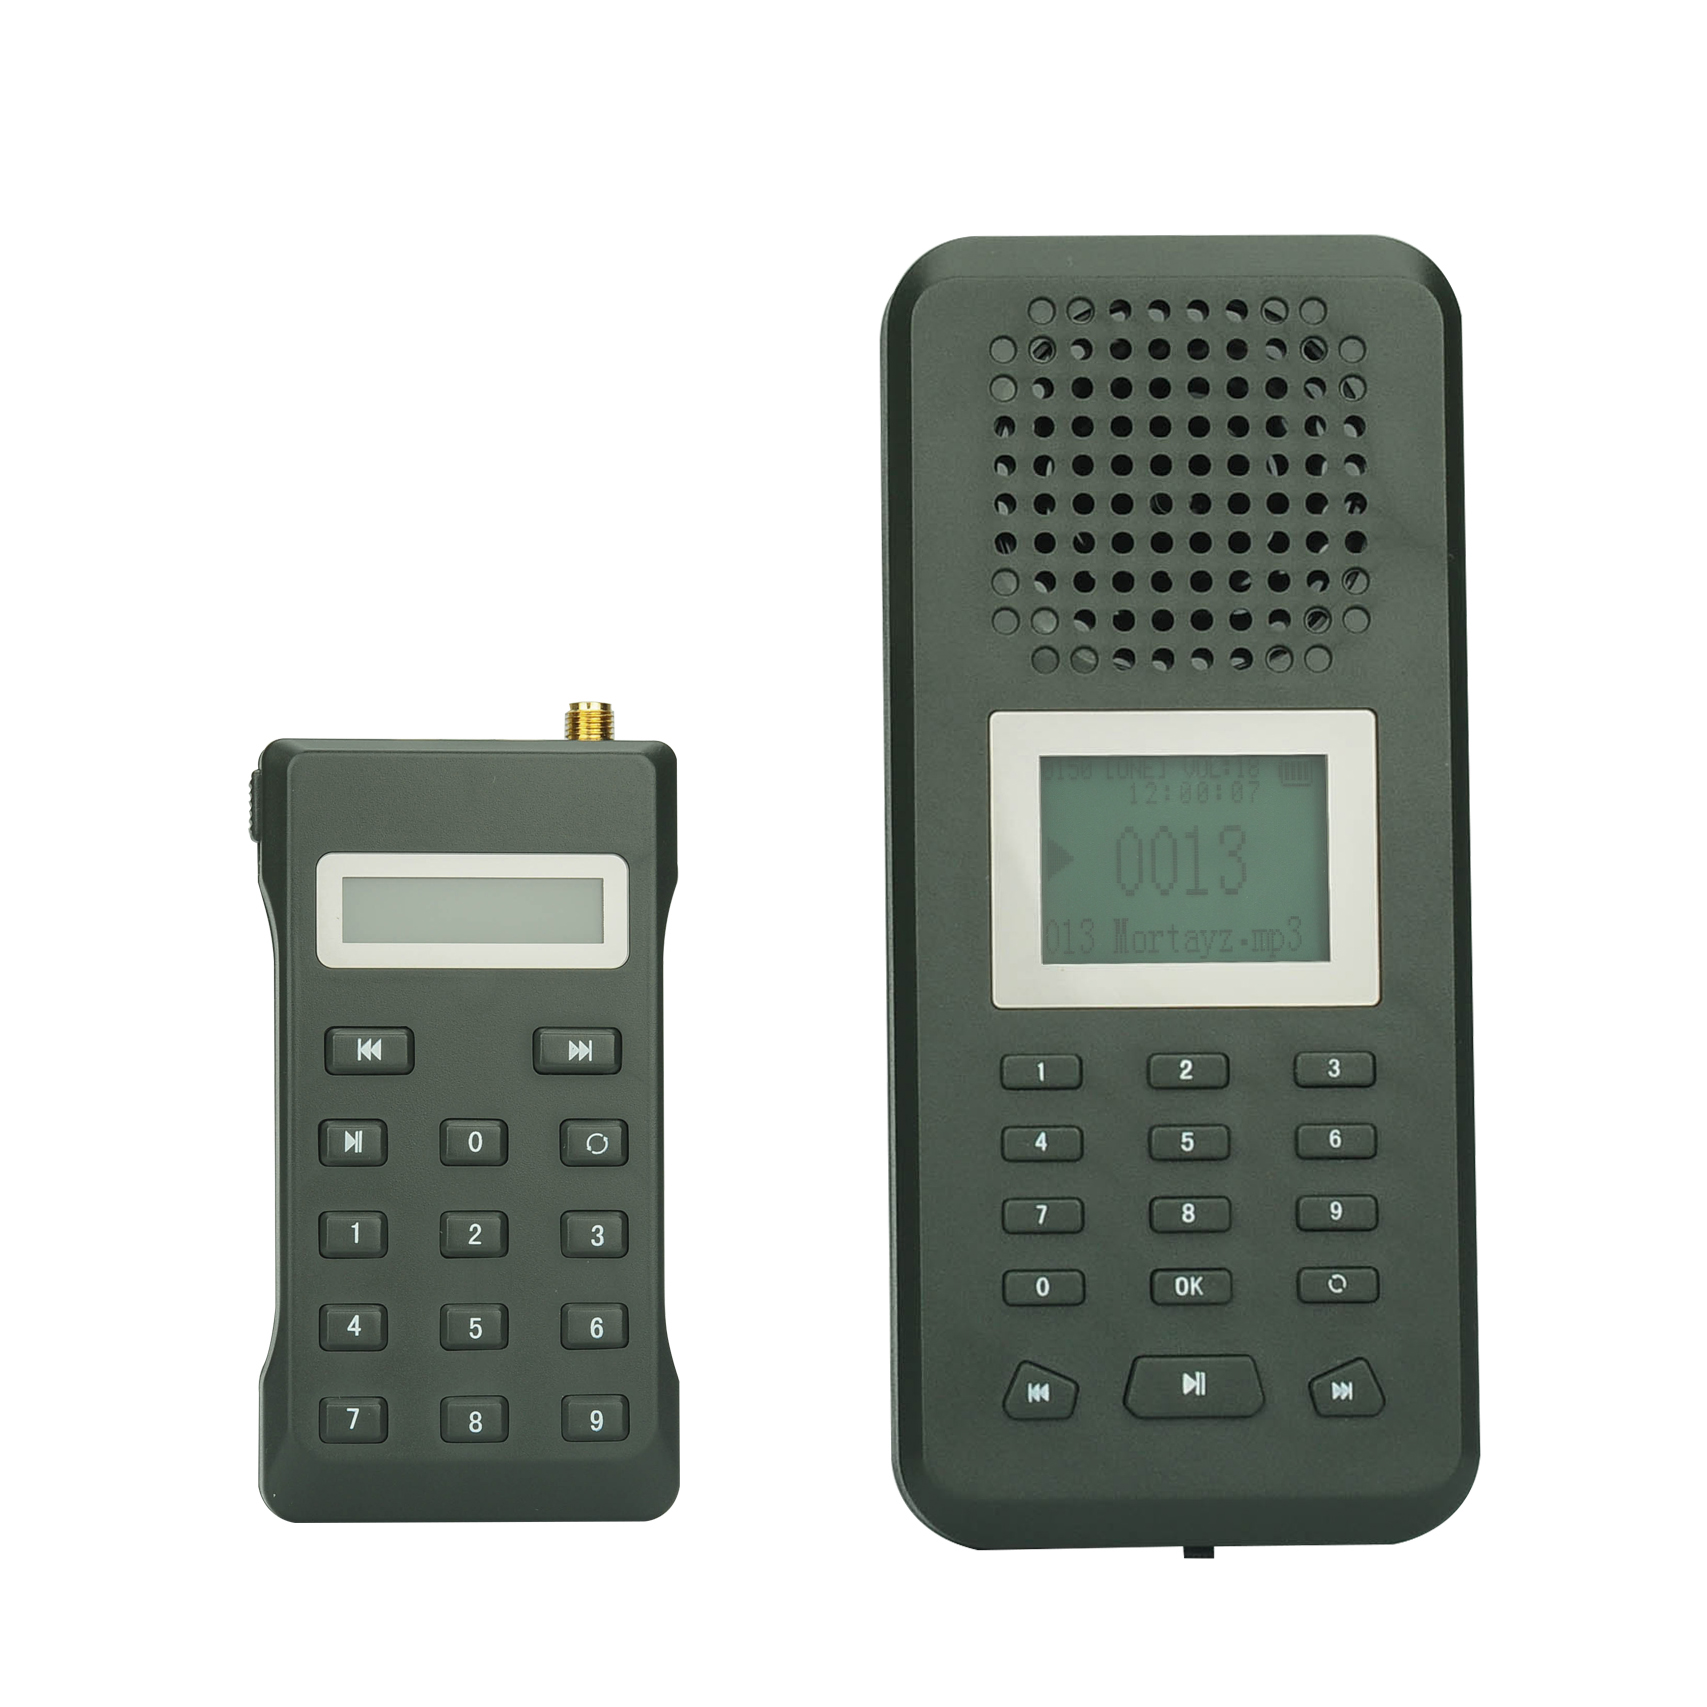 images/wholesale-2016/Digital-Hunting-Bird-Caller-Remote-Control-Built-in-20W-Speaker-2200mAh-Lithium-Battery-150-Built-In-Bird-Sounds-plusbuyer.jpg